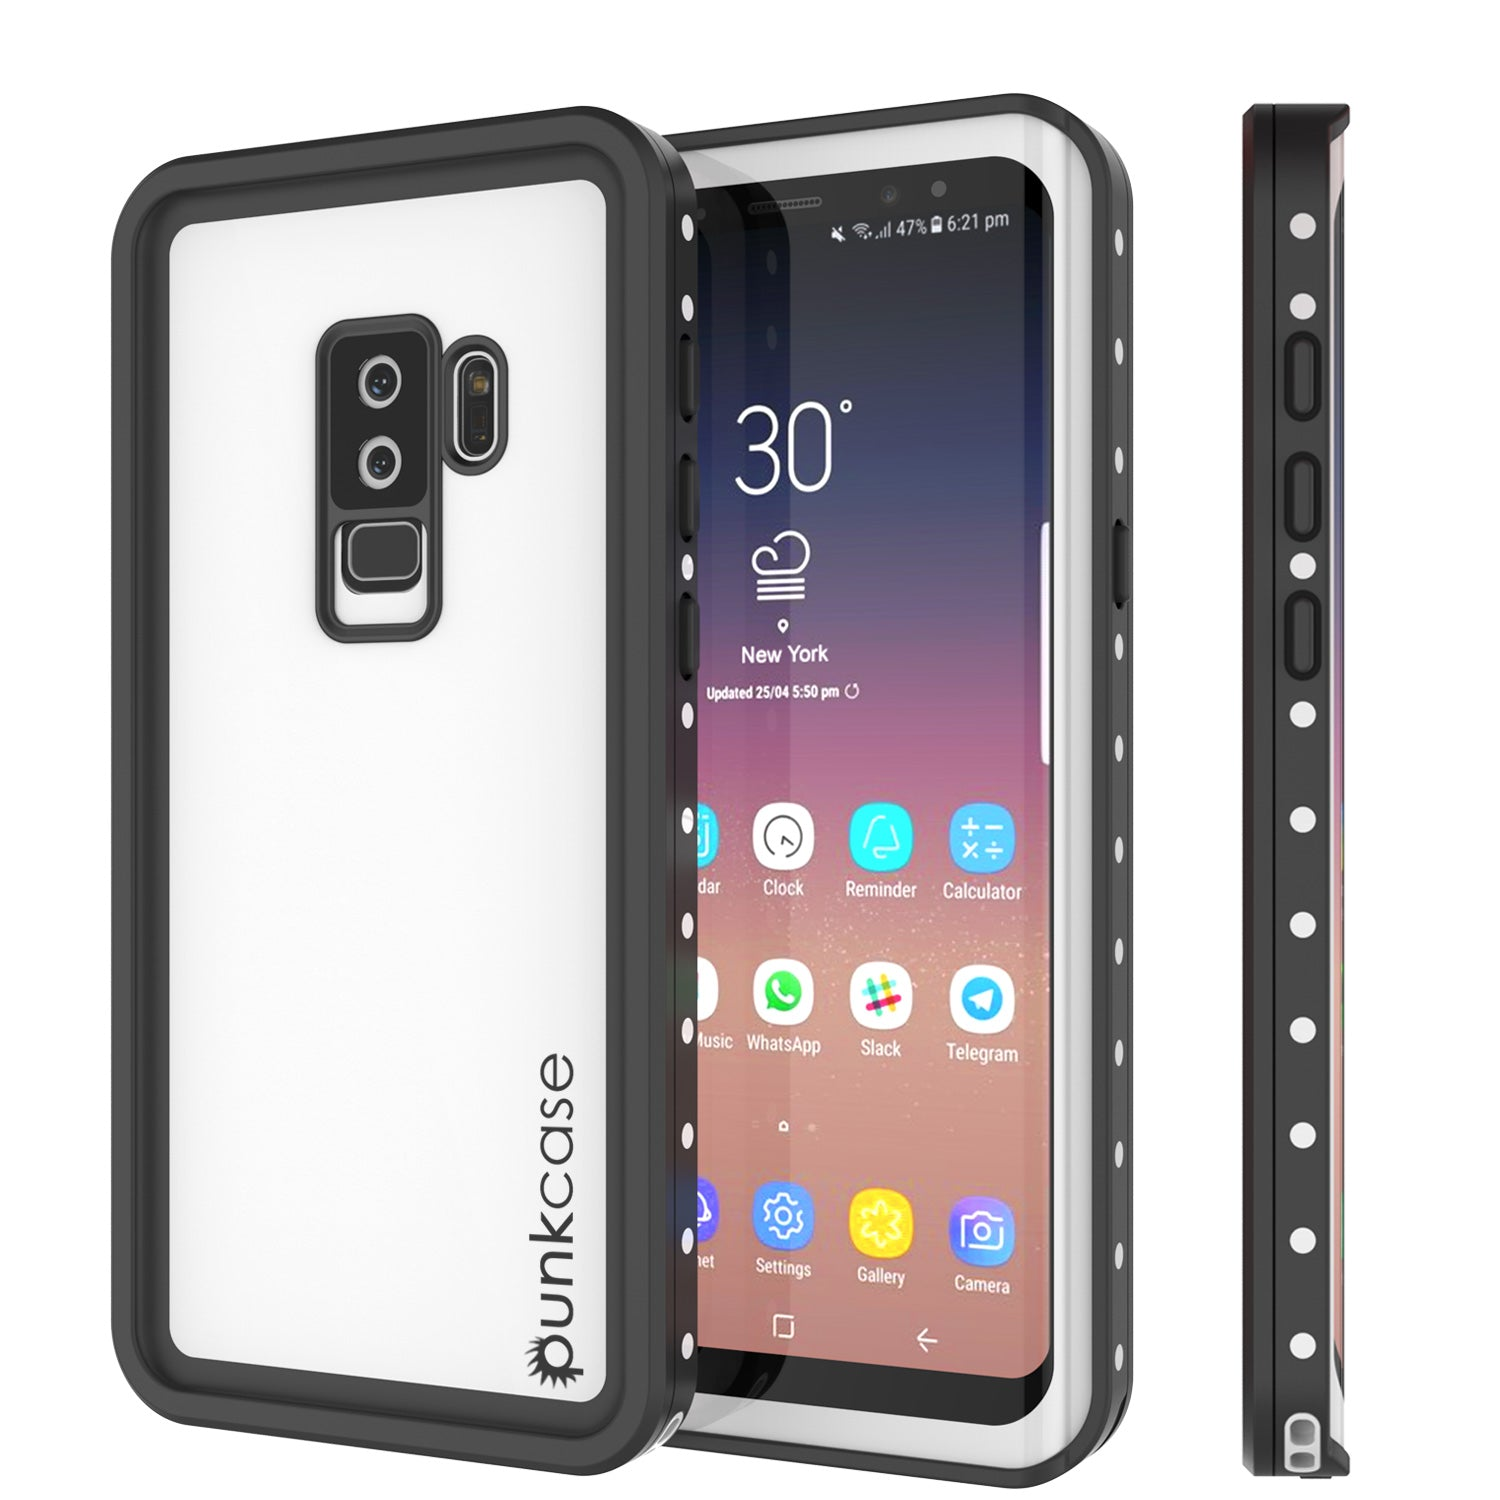 Galaxy S9 Plus Waterproof Case, Punkcase StudStar White Thin 6.6ft Underwater IP68 Shock/Snow Proof